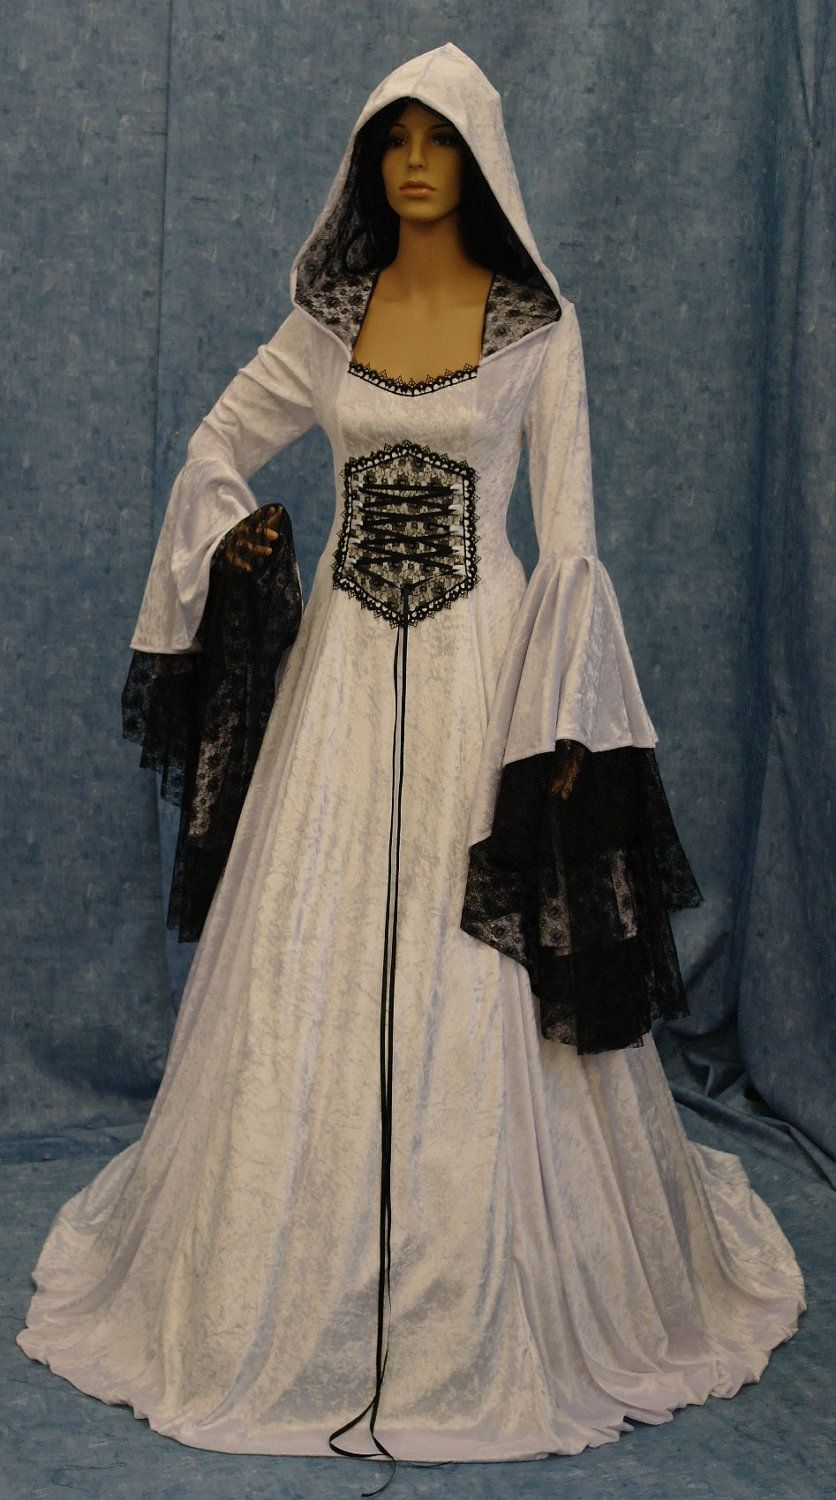 17 Best images about Wiccan Wedding Dresses on Pinterest  Cloaks ...